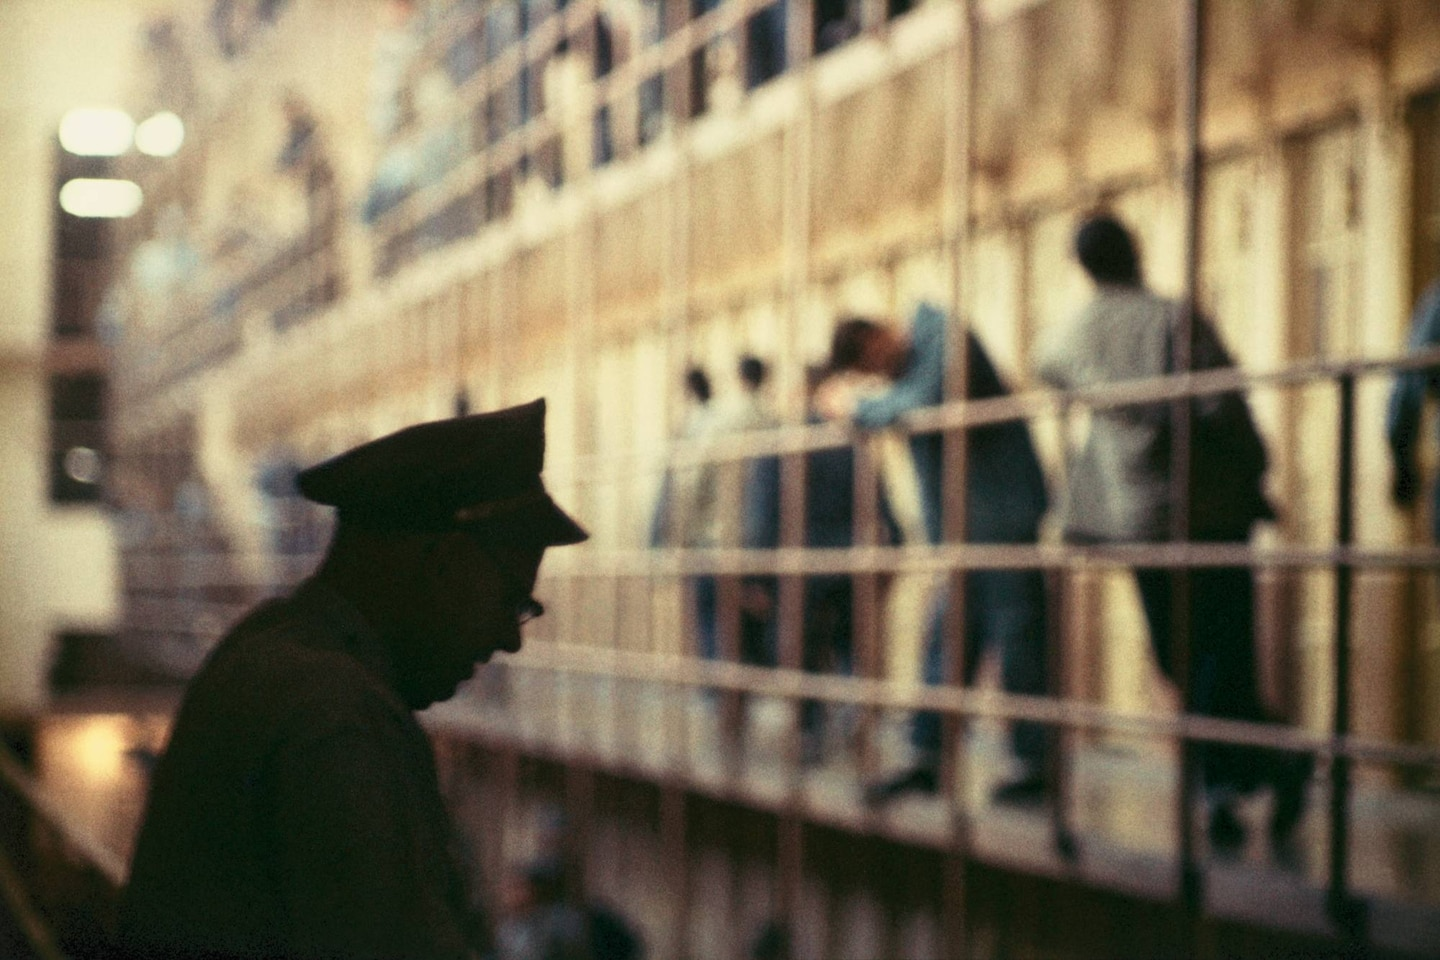 Gordon Parks crime photos from 1957 are featured in new book